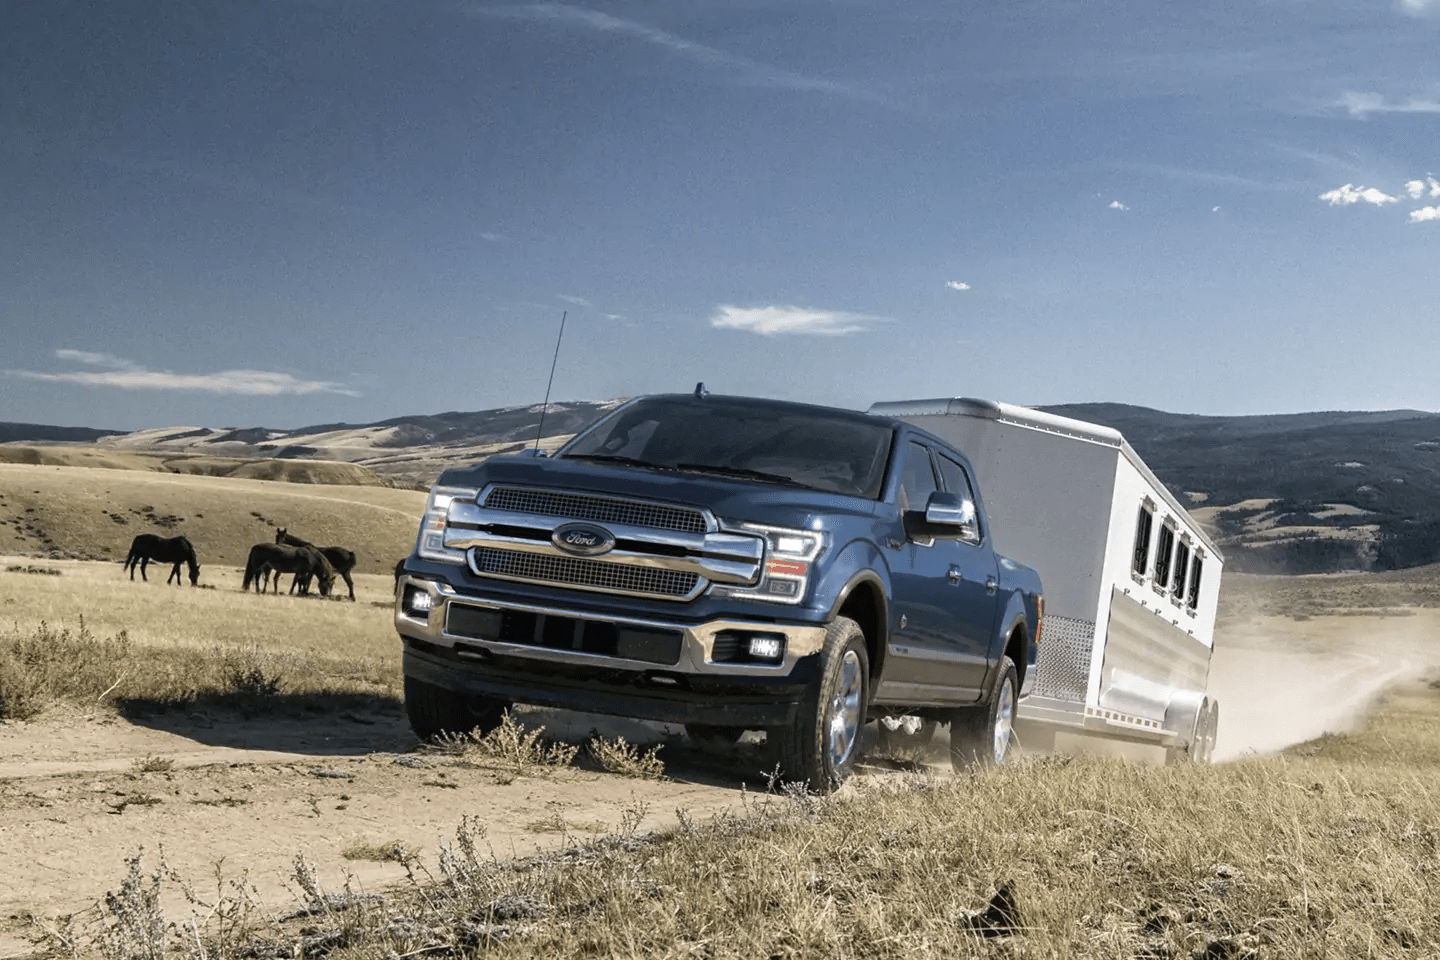 2019 Ford F-150 towing a trailer